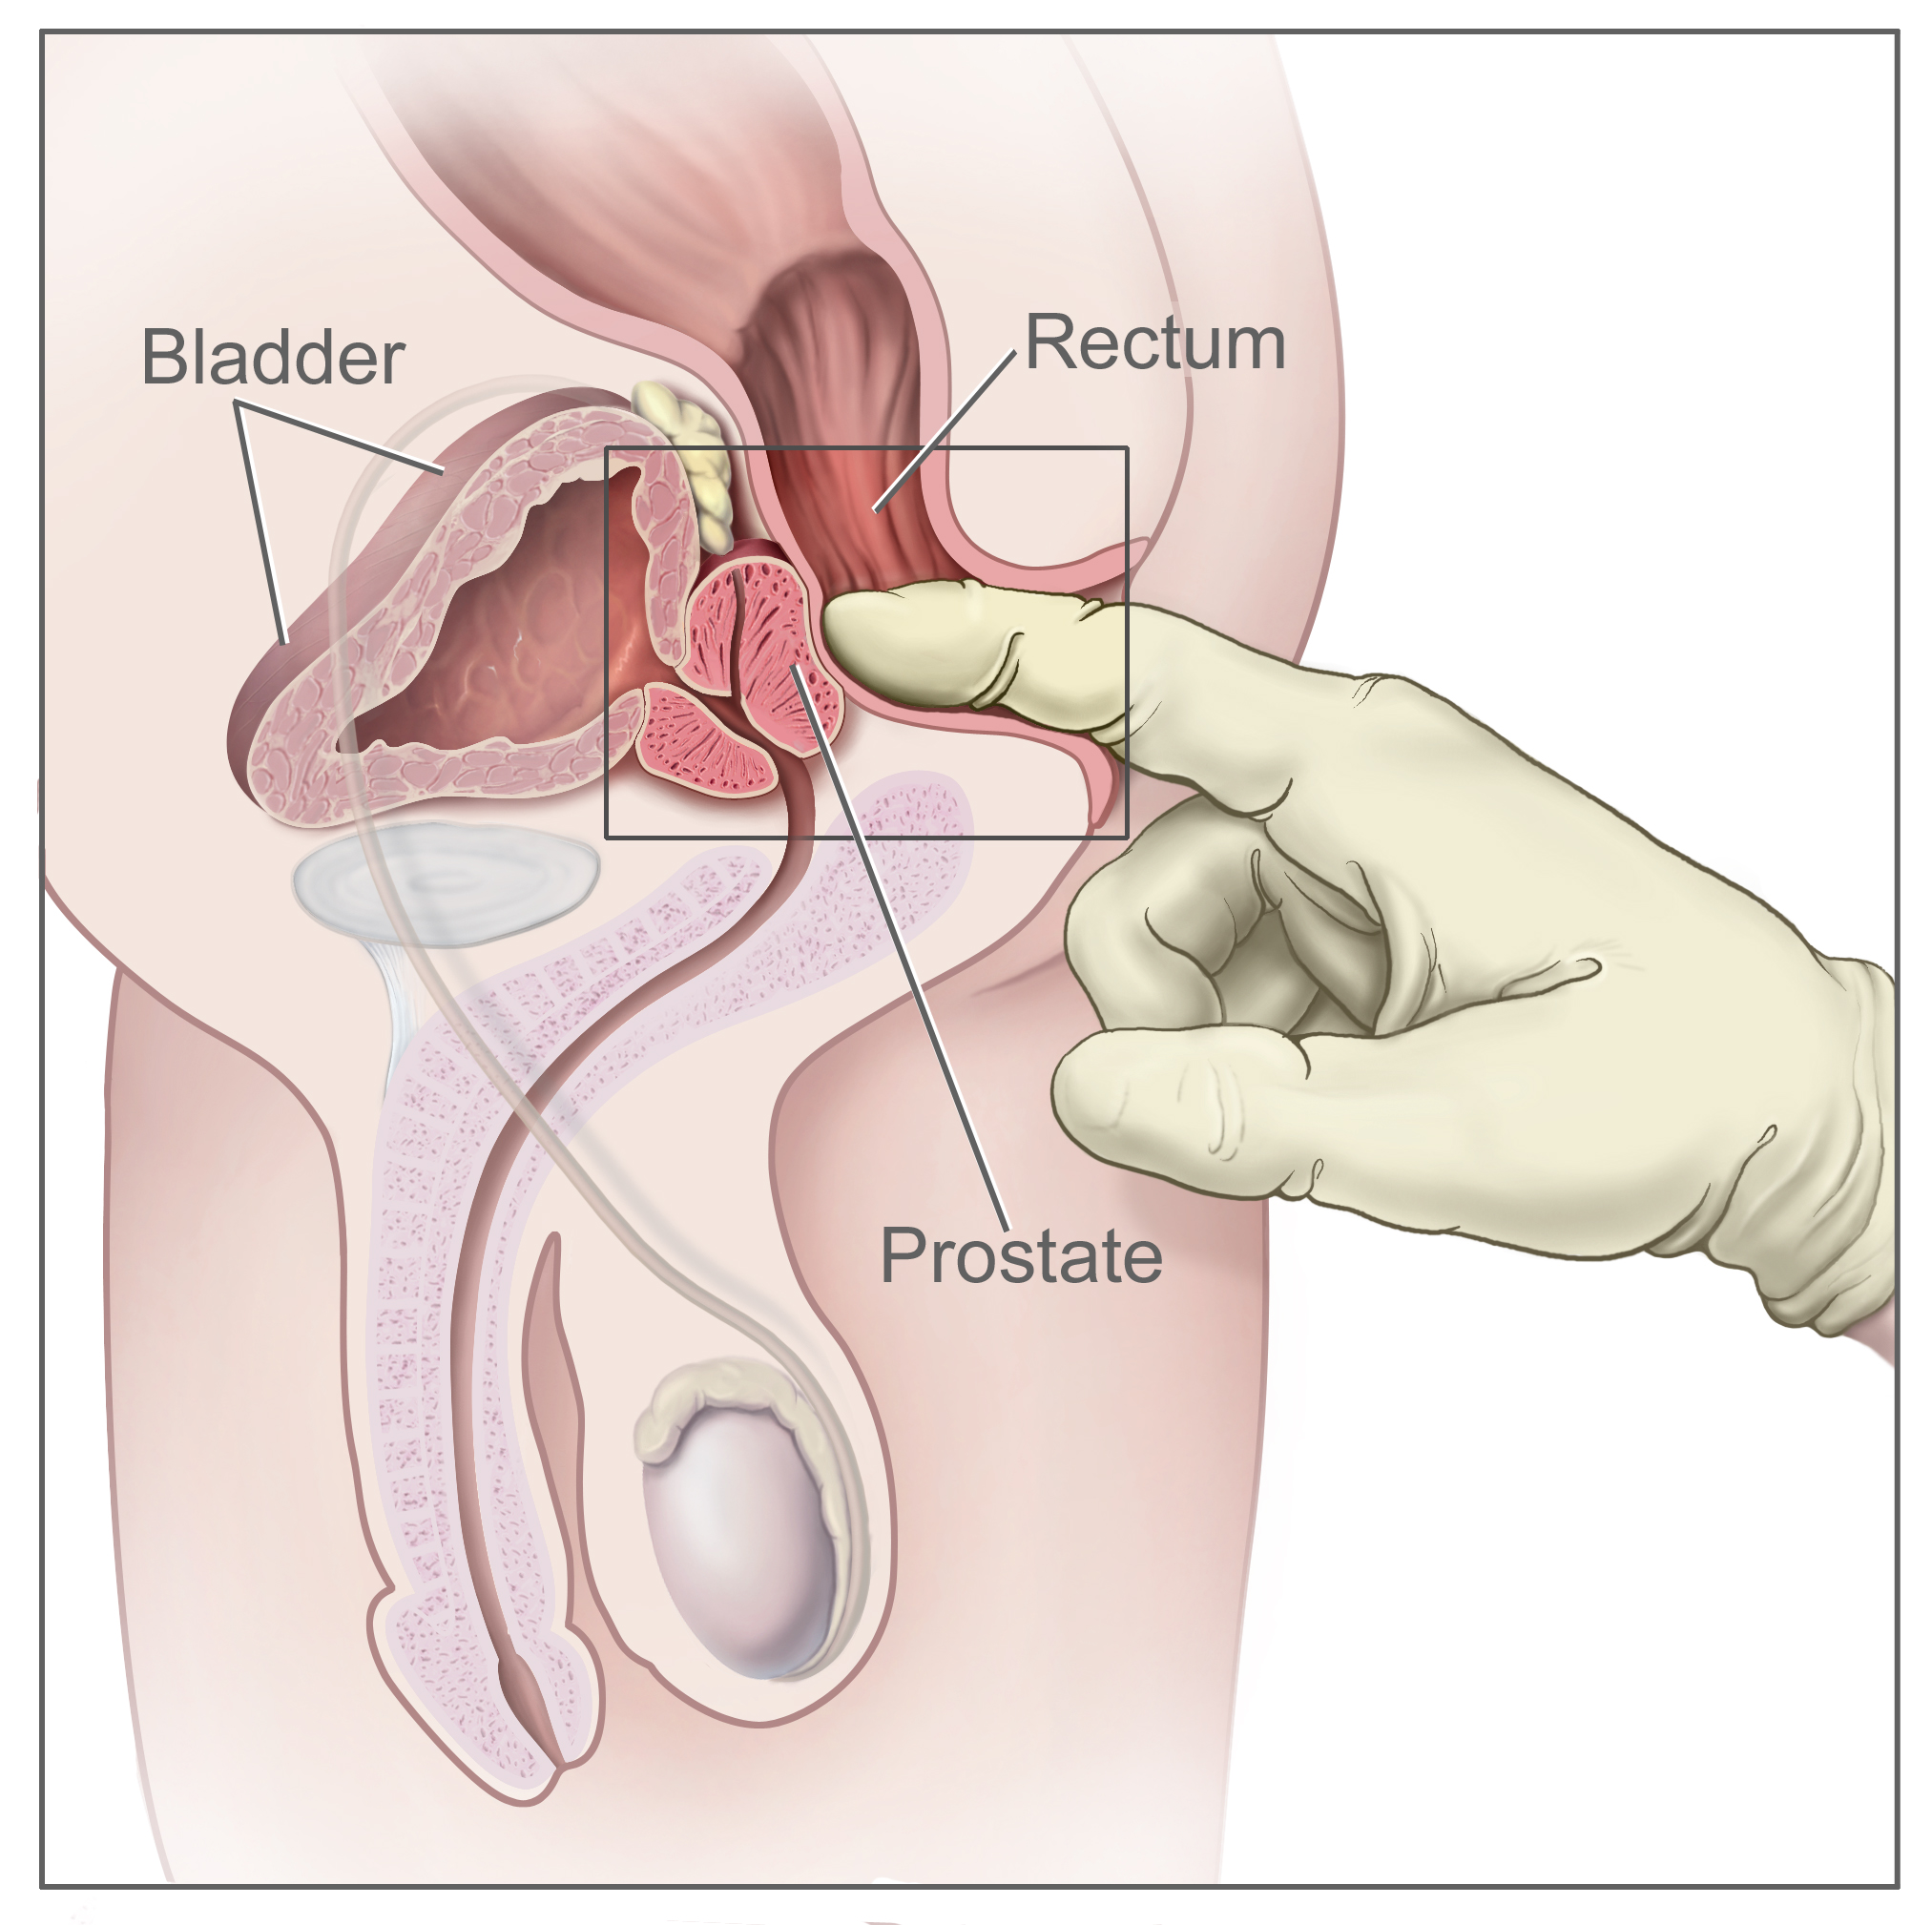 Rectal examination - Wikipedia